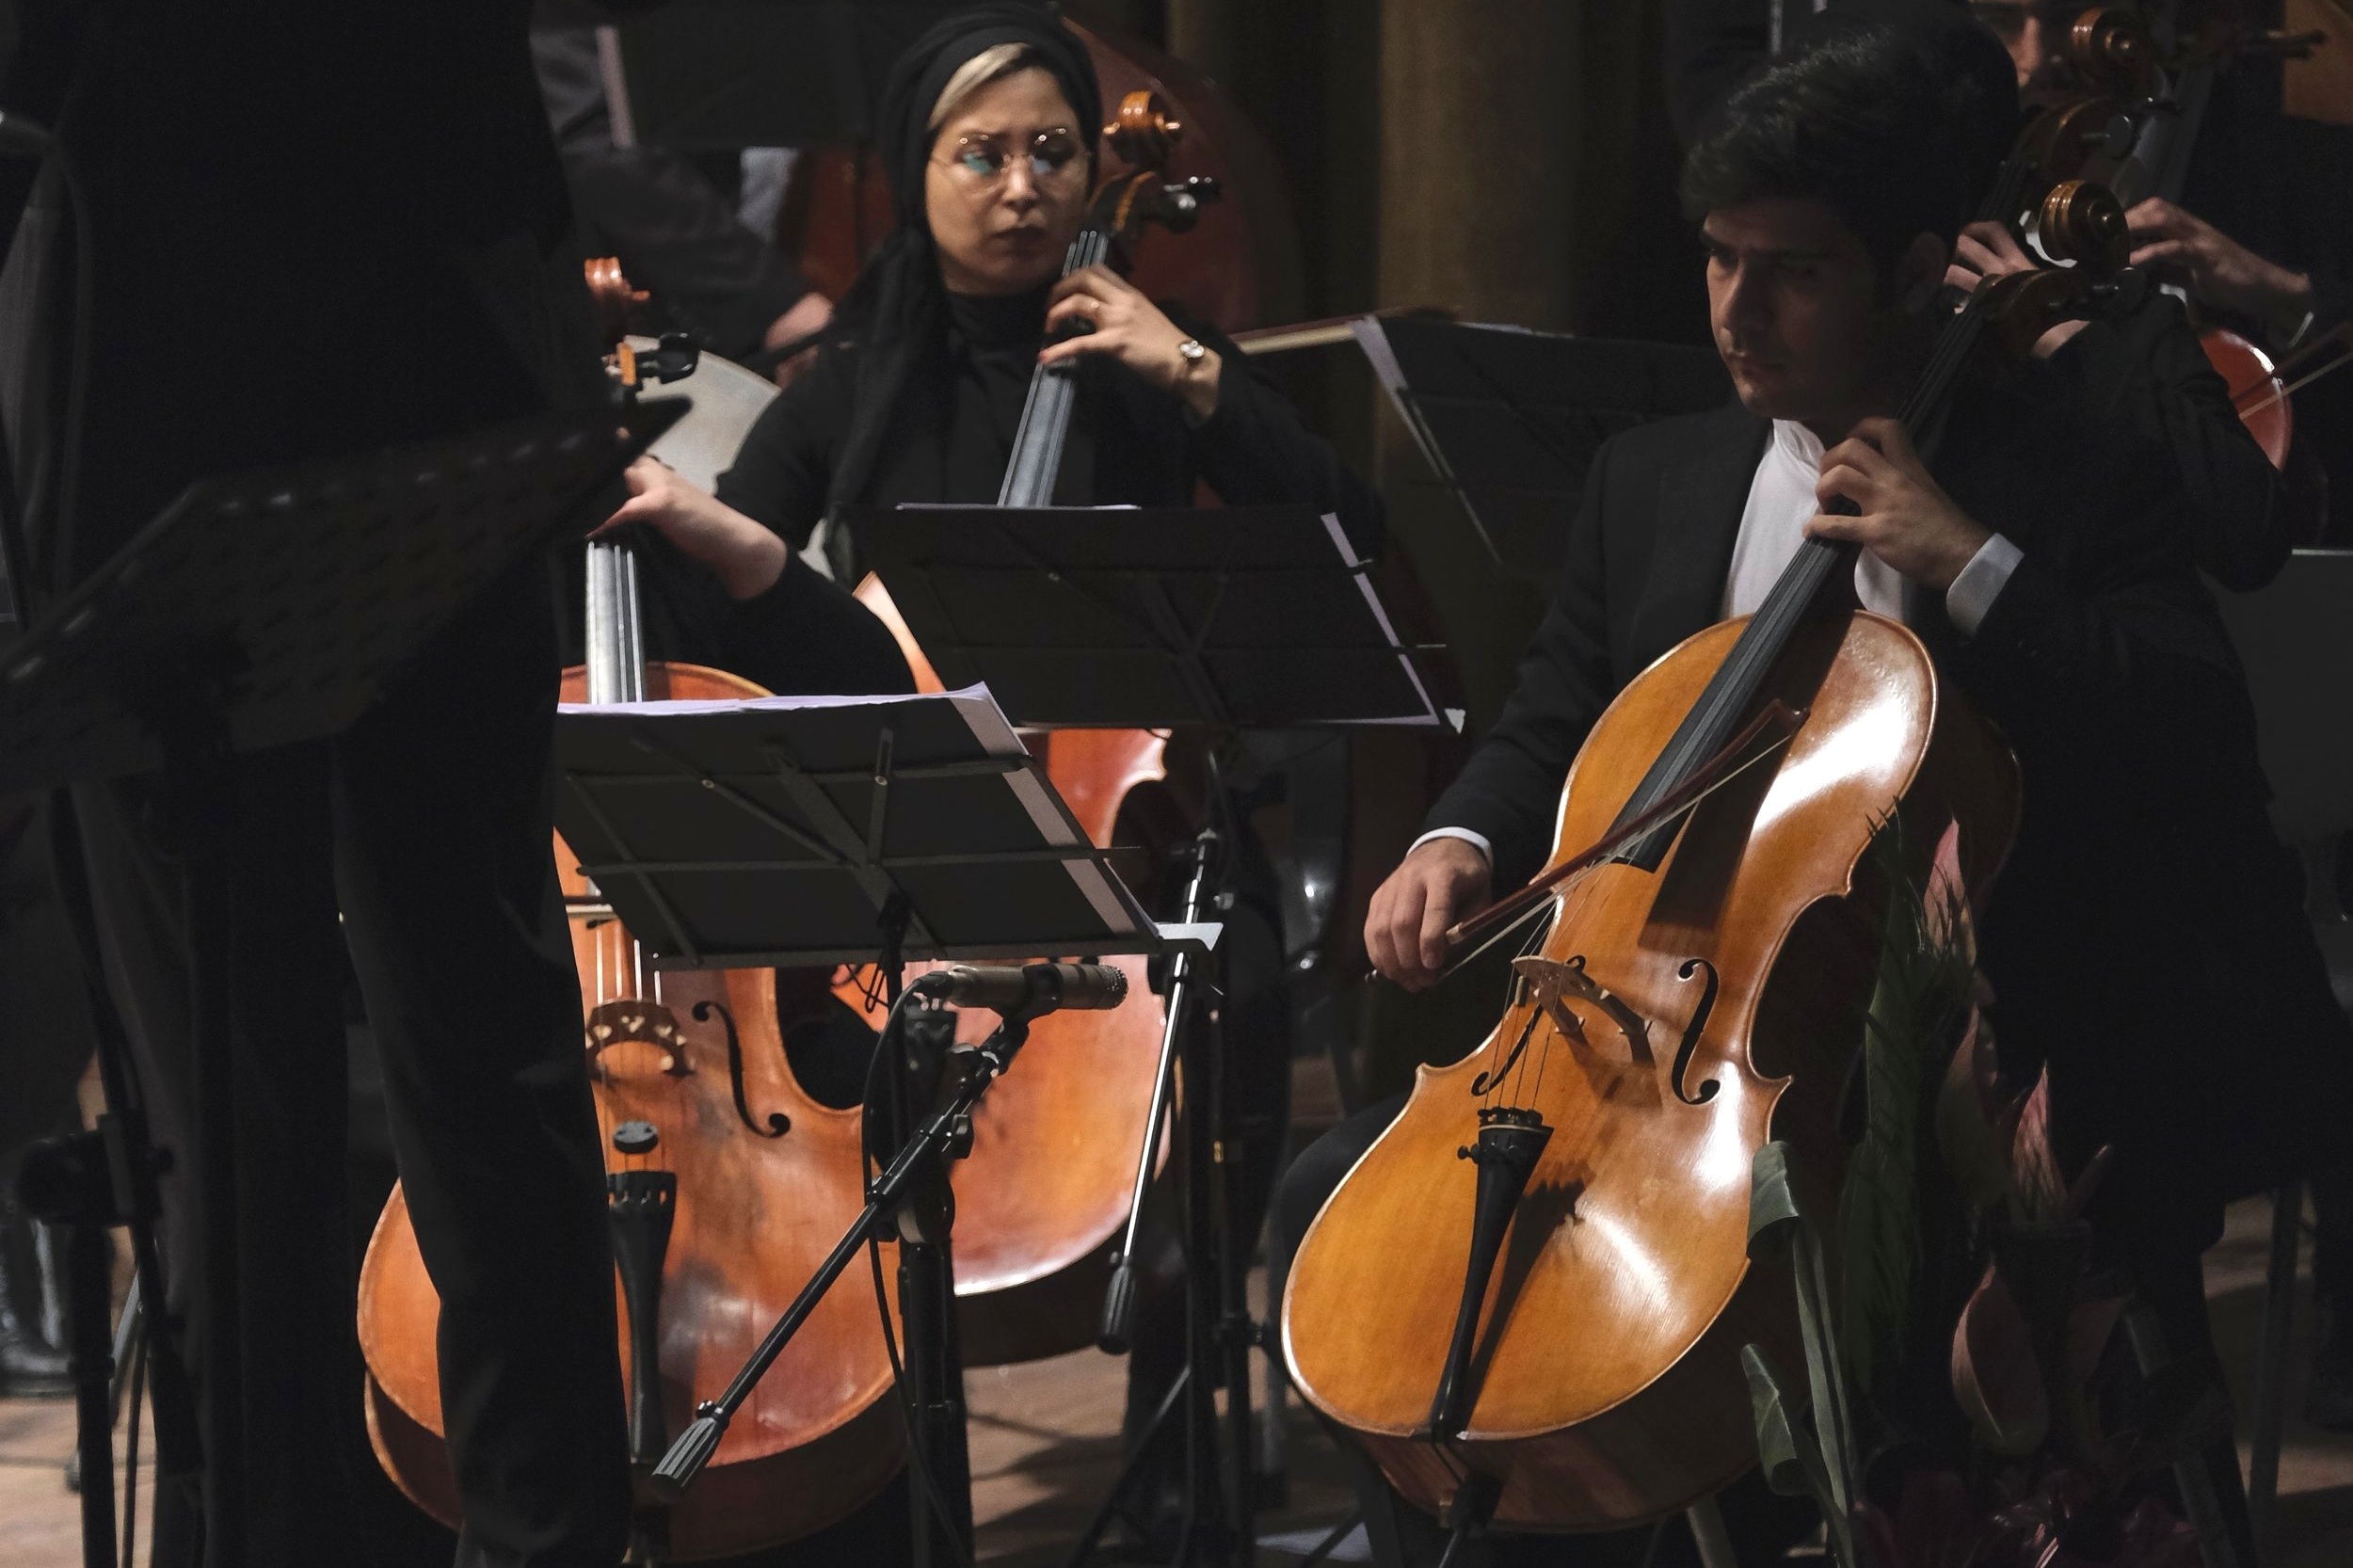 Cello - The romantic-sounding low one that the musician holds between their knees. The cello section also has a lot of big melodies, plus lots of sweet rhythmic parts where they get to jam out. Cello is a lot of people's favourite orchestral instrument, and I tooootally get it.